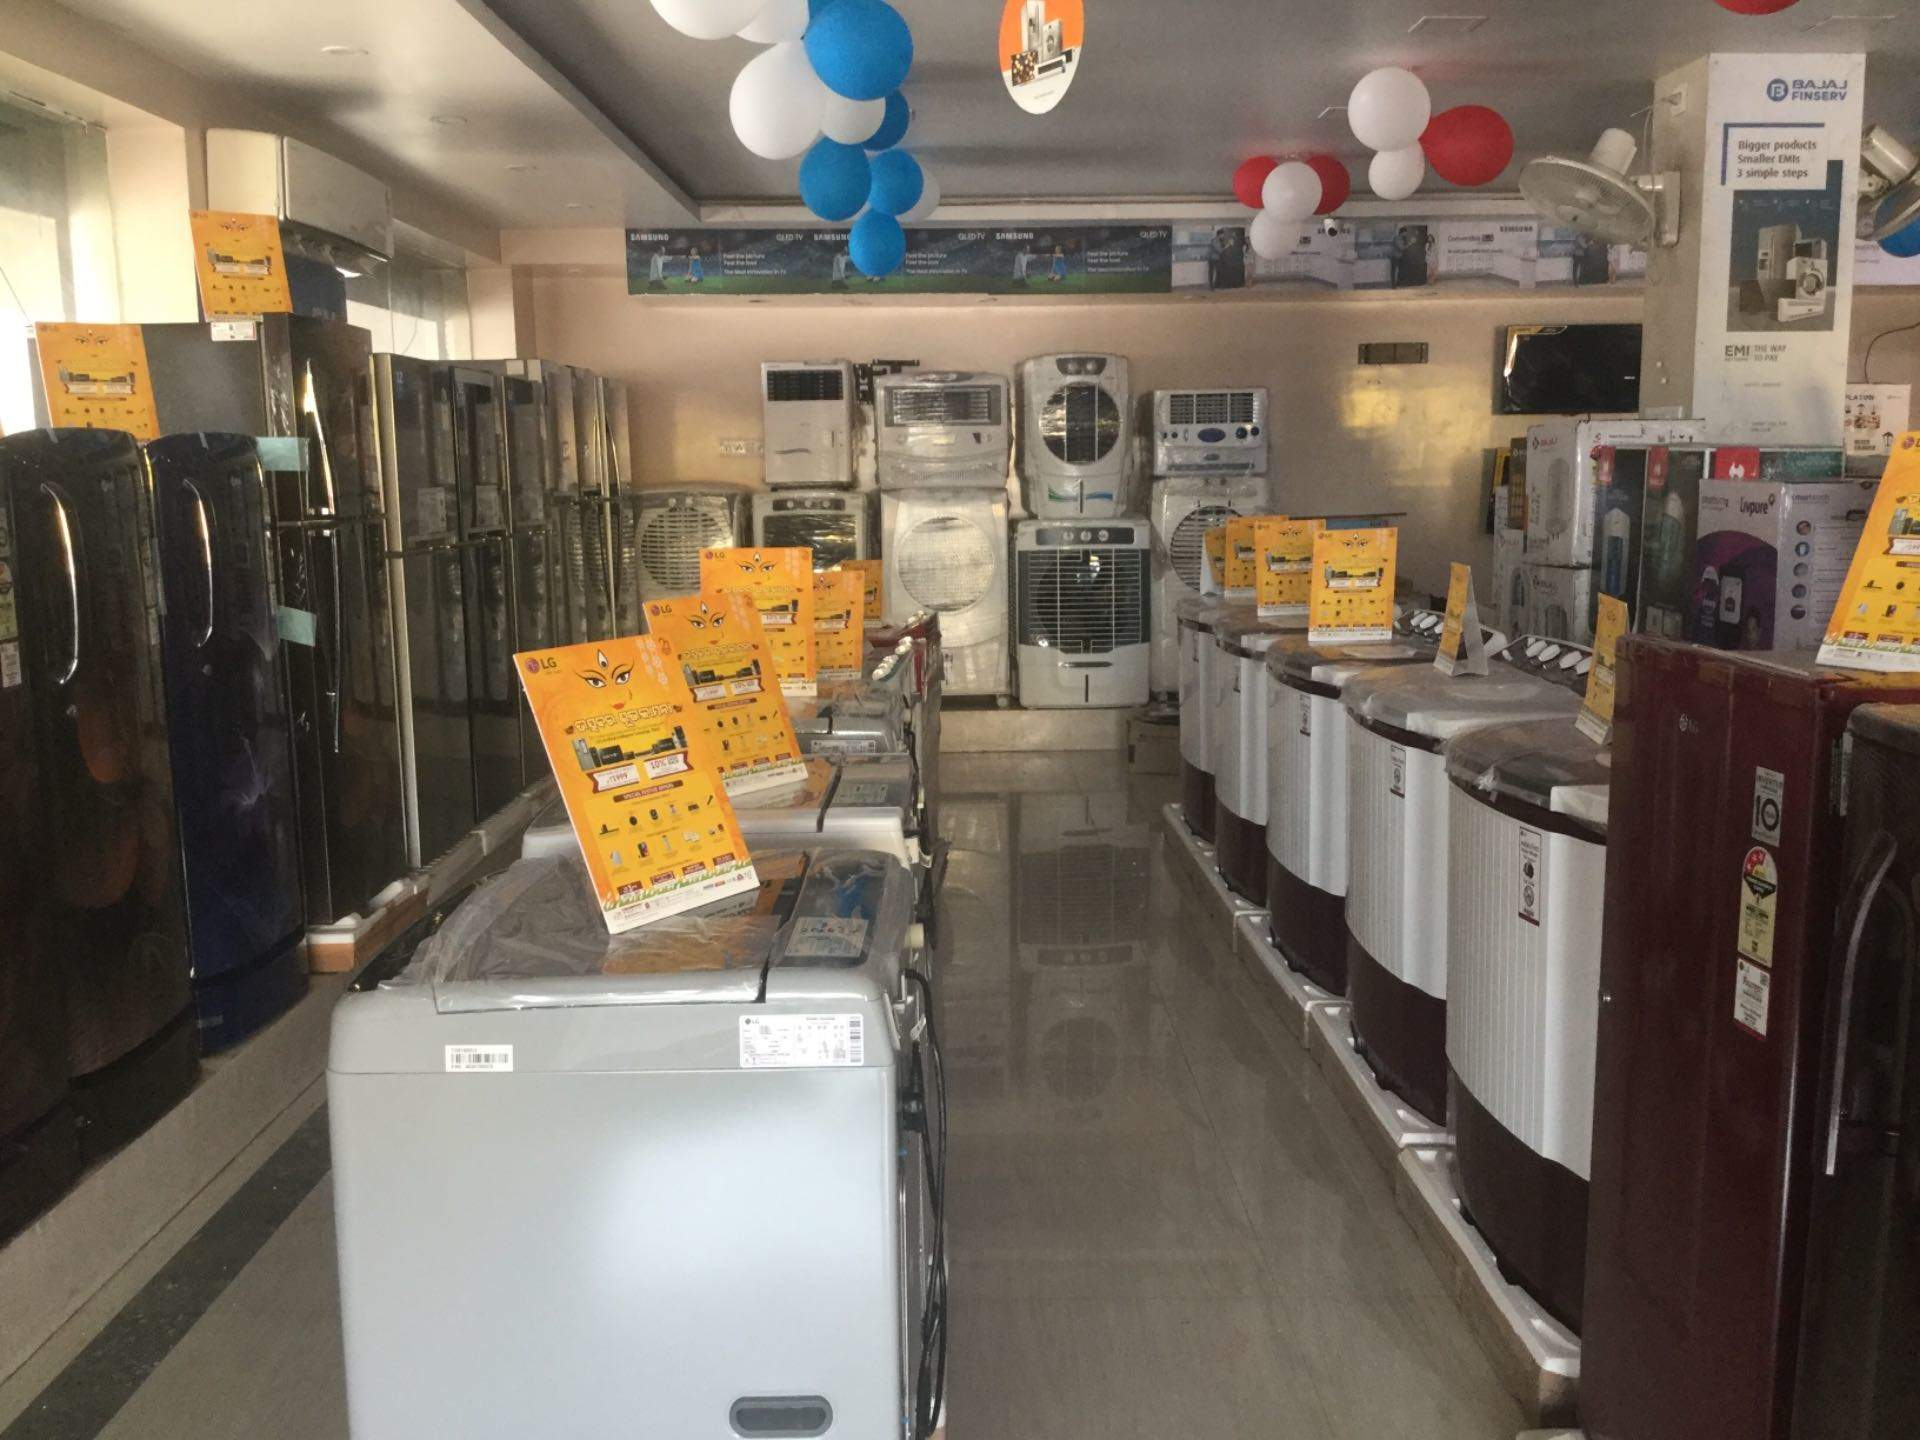 Top 10 AC Shops in Angul - Best AC Dealers - Justdial